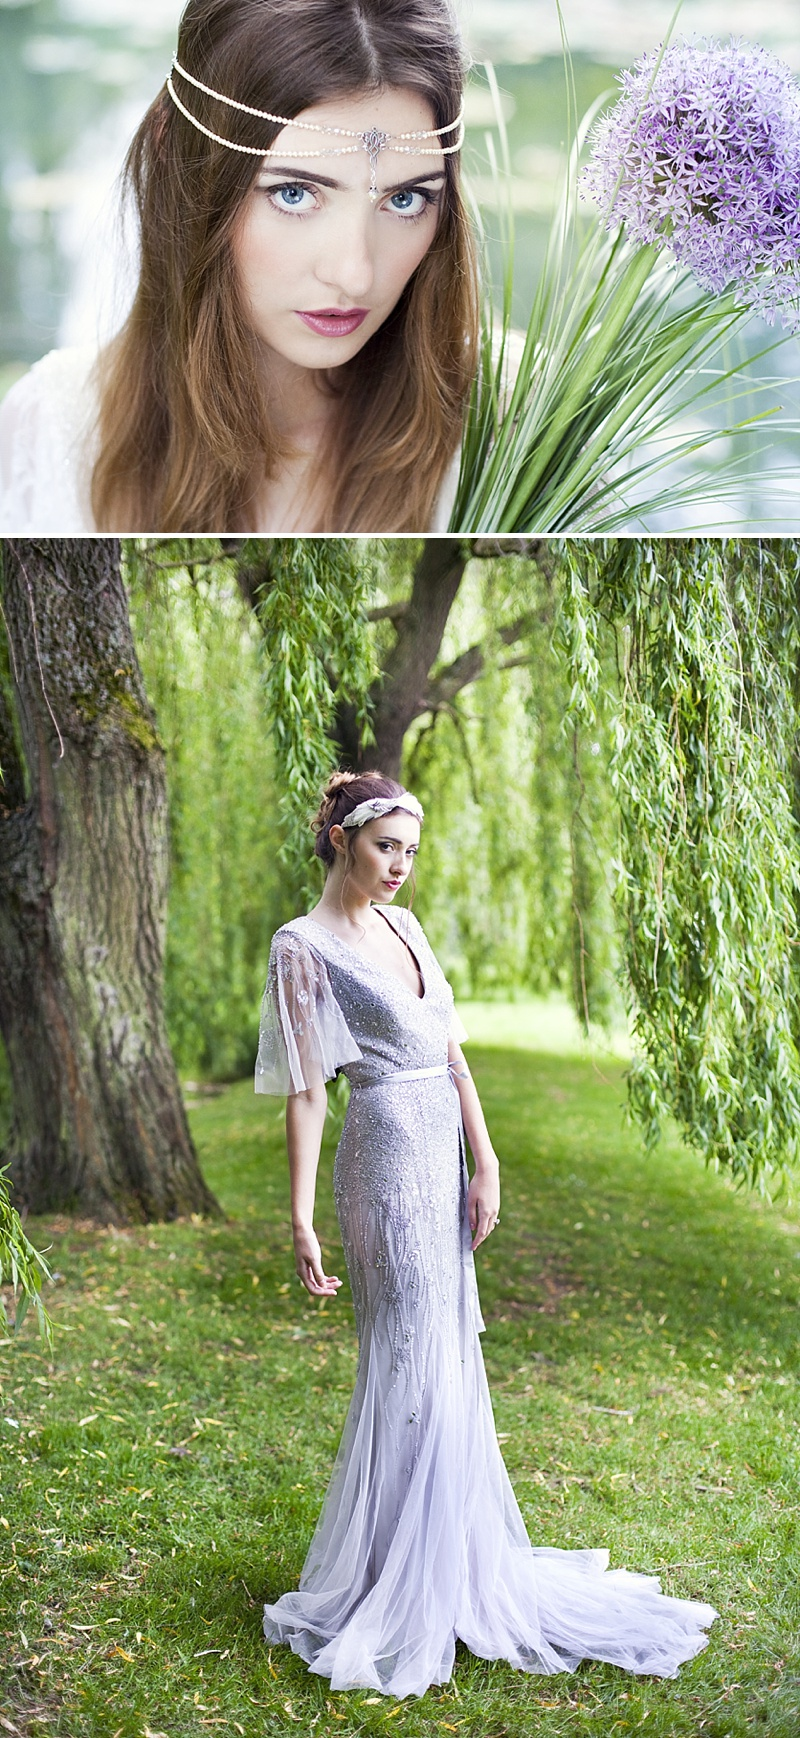 Inspiration Shoot Featuring Donna Crain Headpieces With A Bridal Make Up Product Recommendations From Adele Rosie Make Up Artist Images By Cecelina Photography_0005